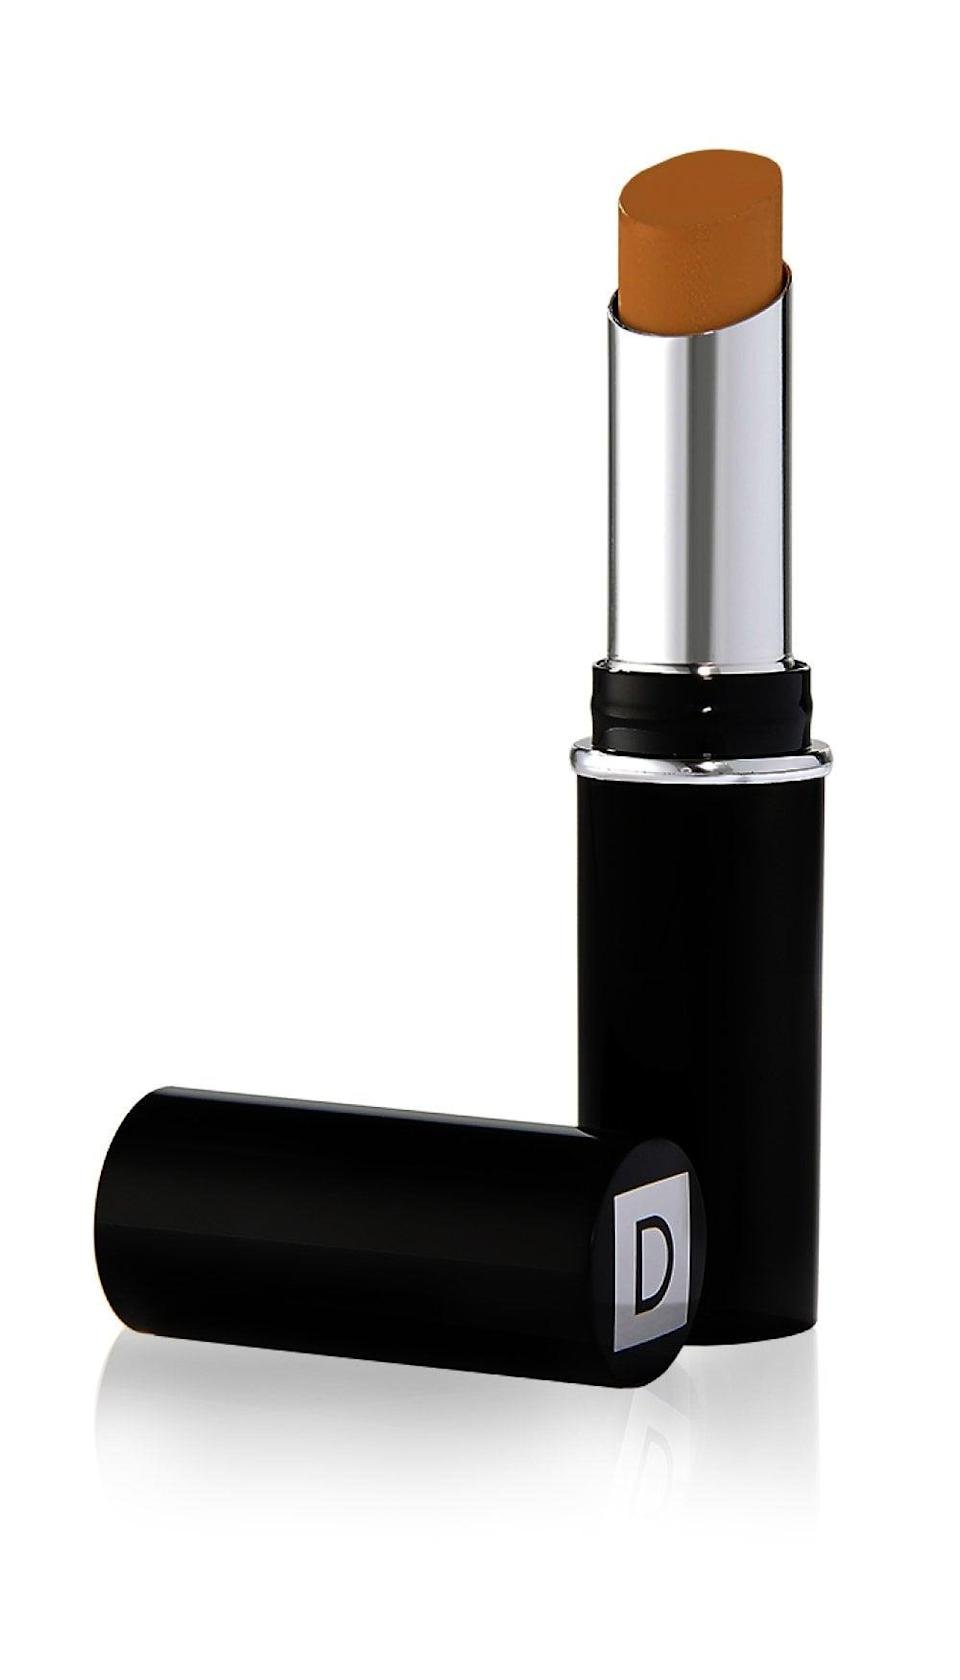 """<p>Protect your skin from future damage with the <a href=""""https://www.popsugar.com/buy/Dermablend-Quick-Fix-Full-Coverage-Concealer-559880?p_name=Dermablend%20Quick-Fix%20Full-Coverage%20Concealer&retailer=amazon.com&pid=559880&price=26&evar1=bella%3Aus&evar9=46398513&evar98=https%3A%2F%2Fwww.popsugar.com%2Fphoto-gallery%2F46398513%2Fimage%2F46398541%2FBest-Concealer-SPF-Protection&list1=makeup%2Cbeauty%20products%2Cconcealer&prop13=api&pdata=1"""" class=""""link rapid-noclick-resp"""" rel=""""nofollow noopener"""" target=""""_blank"""" data-ylk=""""slk:Dermablend Quick-Fix Full-Coverage Concealer"""">Dermablend Quick-Fix Full-Coverage Concealer</a> ($26). It's formulated with broad spectrum SPF 30 and will cover even your darkest hyperpigmentation.</p>"""